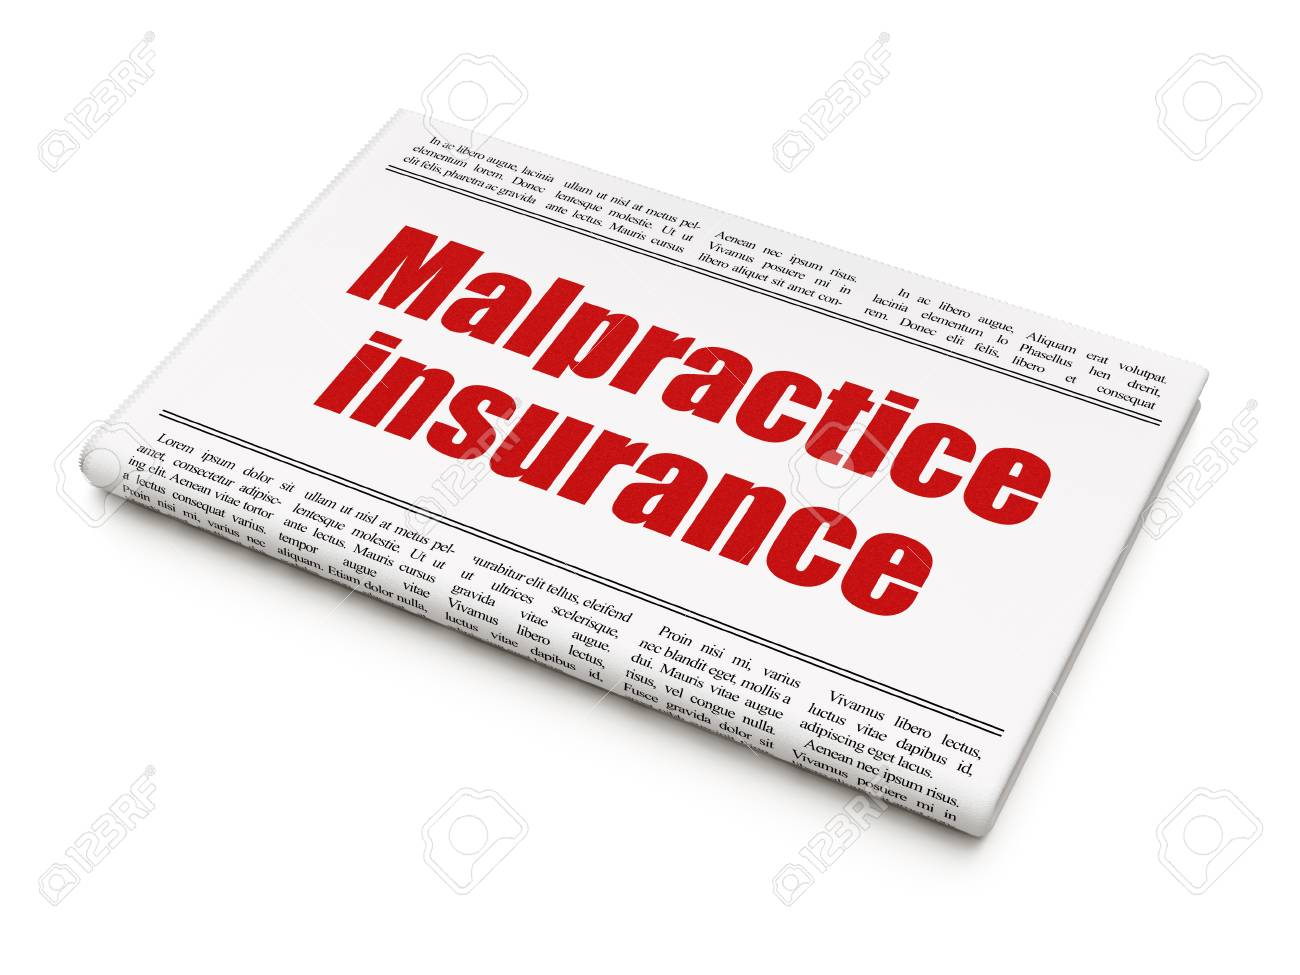 Image result for images of malpractice insurance